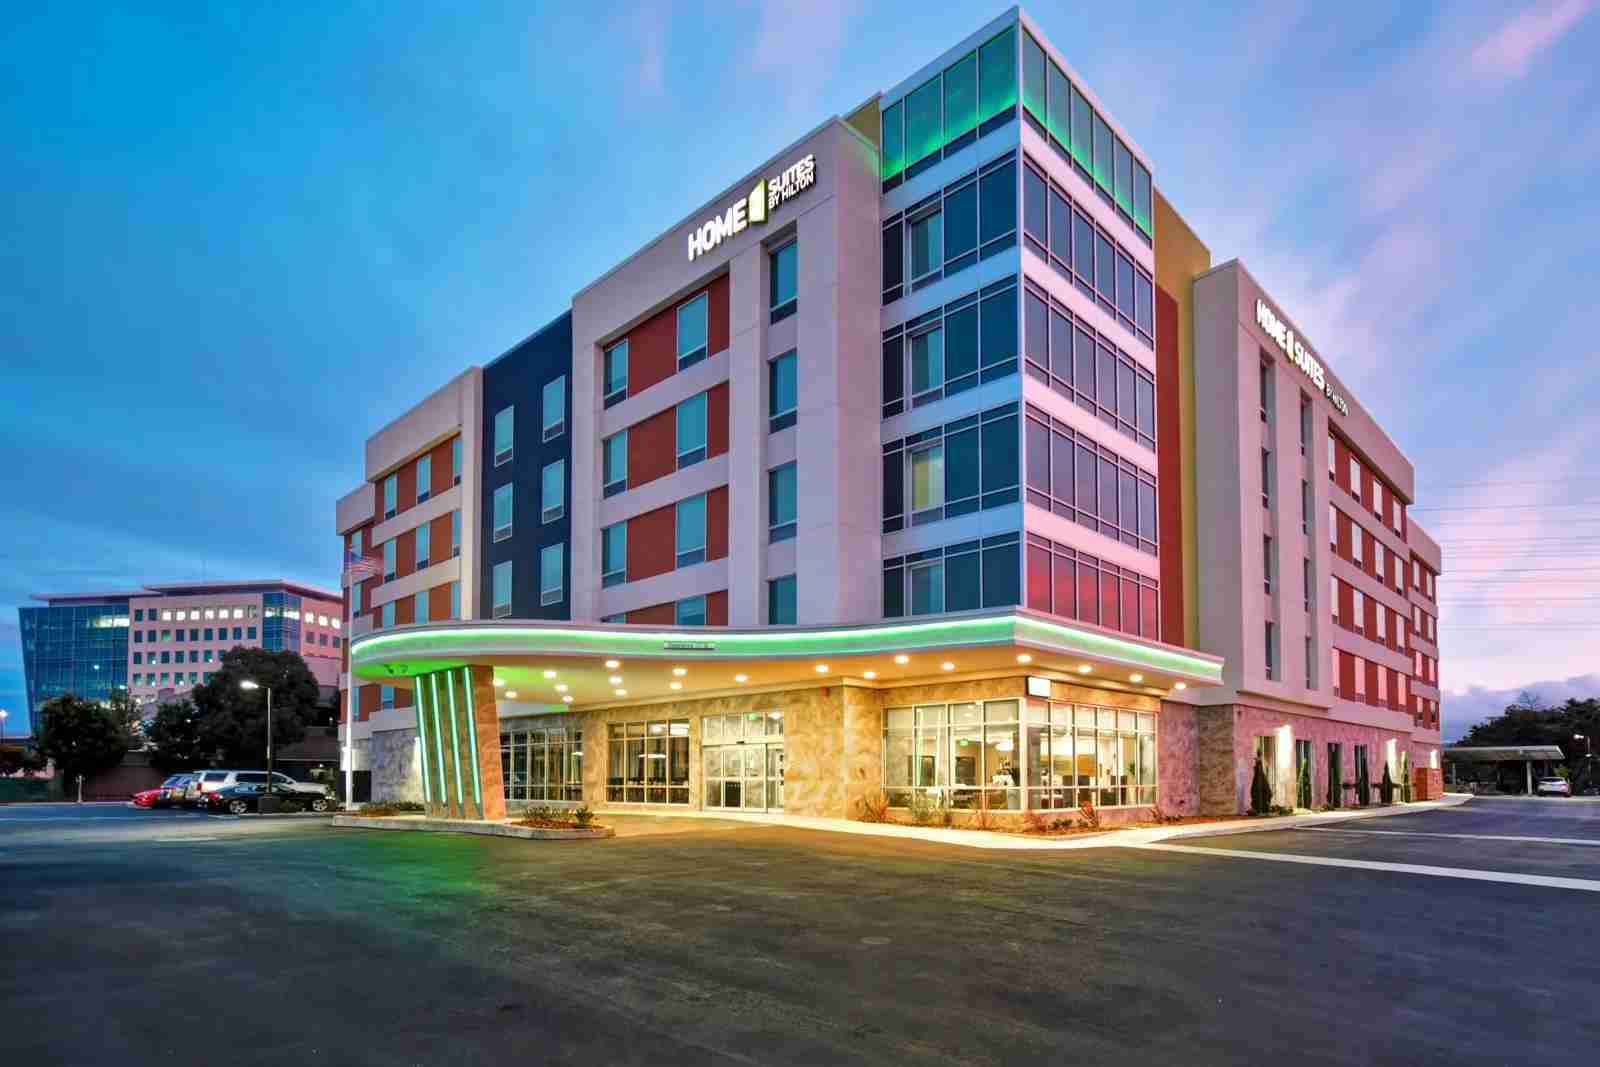 Home2 Suites by Hilton San Francisco Airport. (Photo courtesy of Hilton)